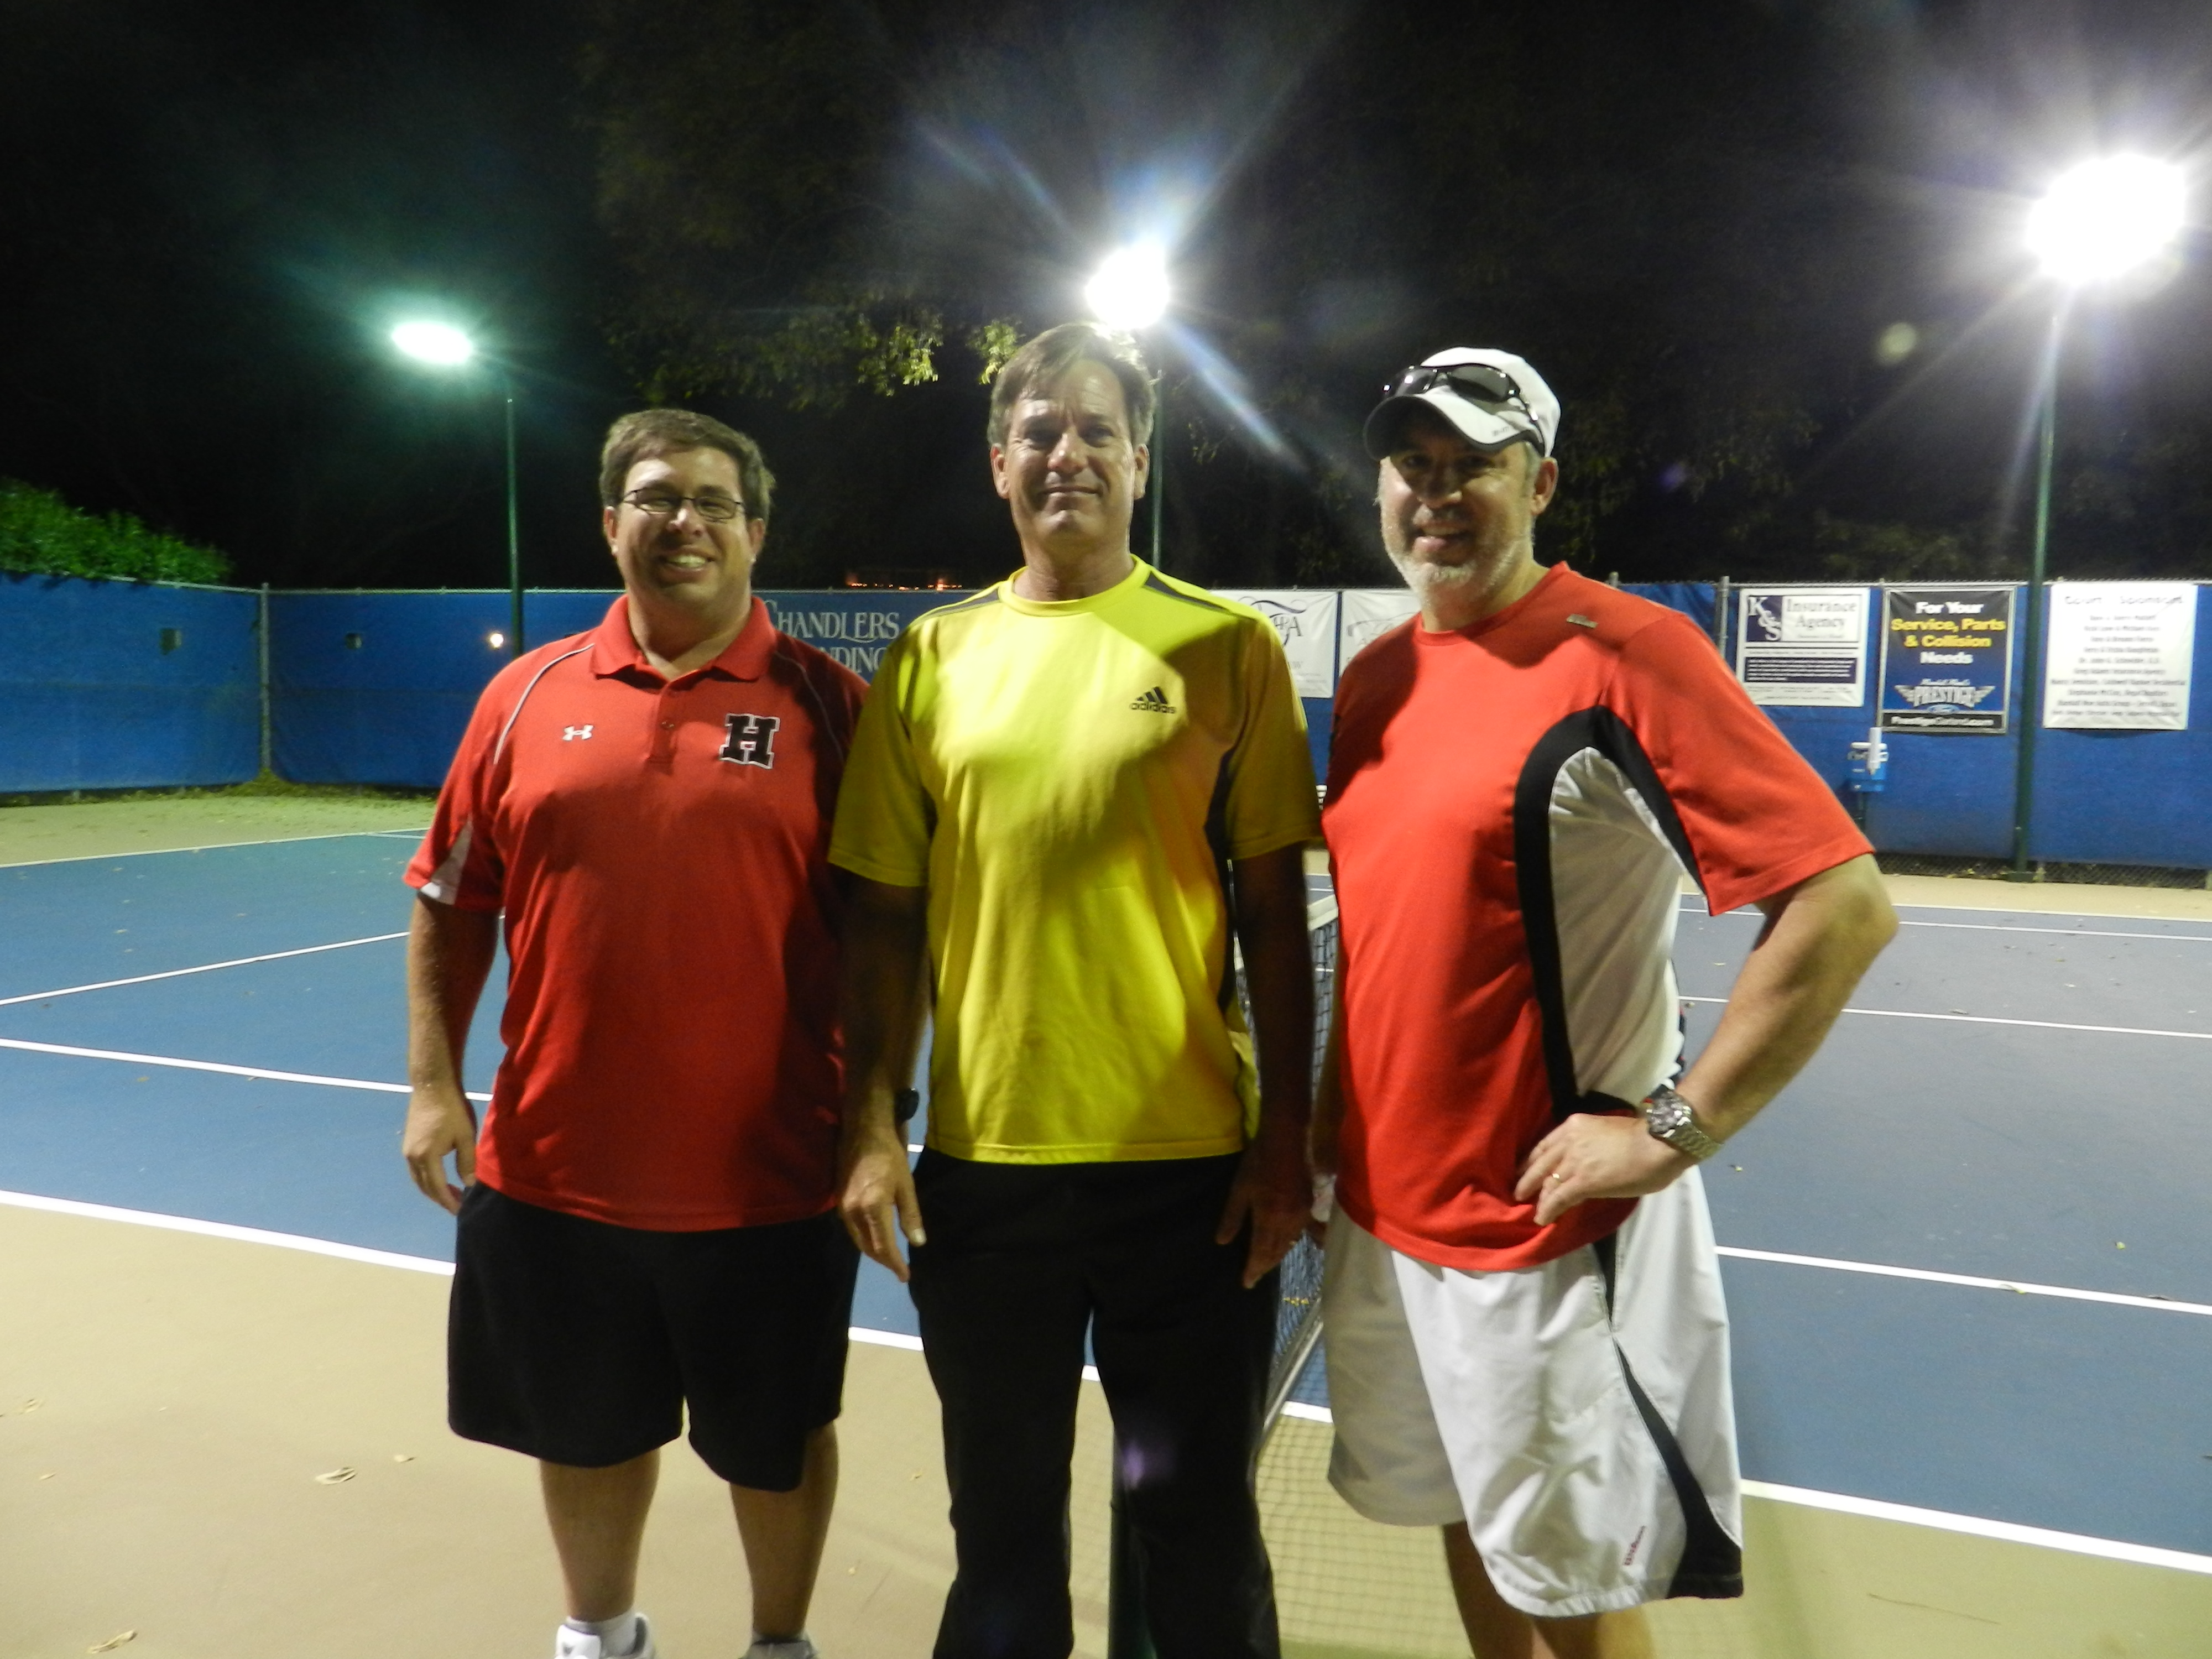 Heath Hawks Pro/Am tennis fundraiser big success